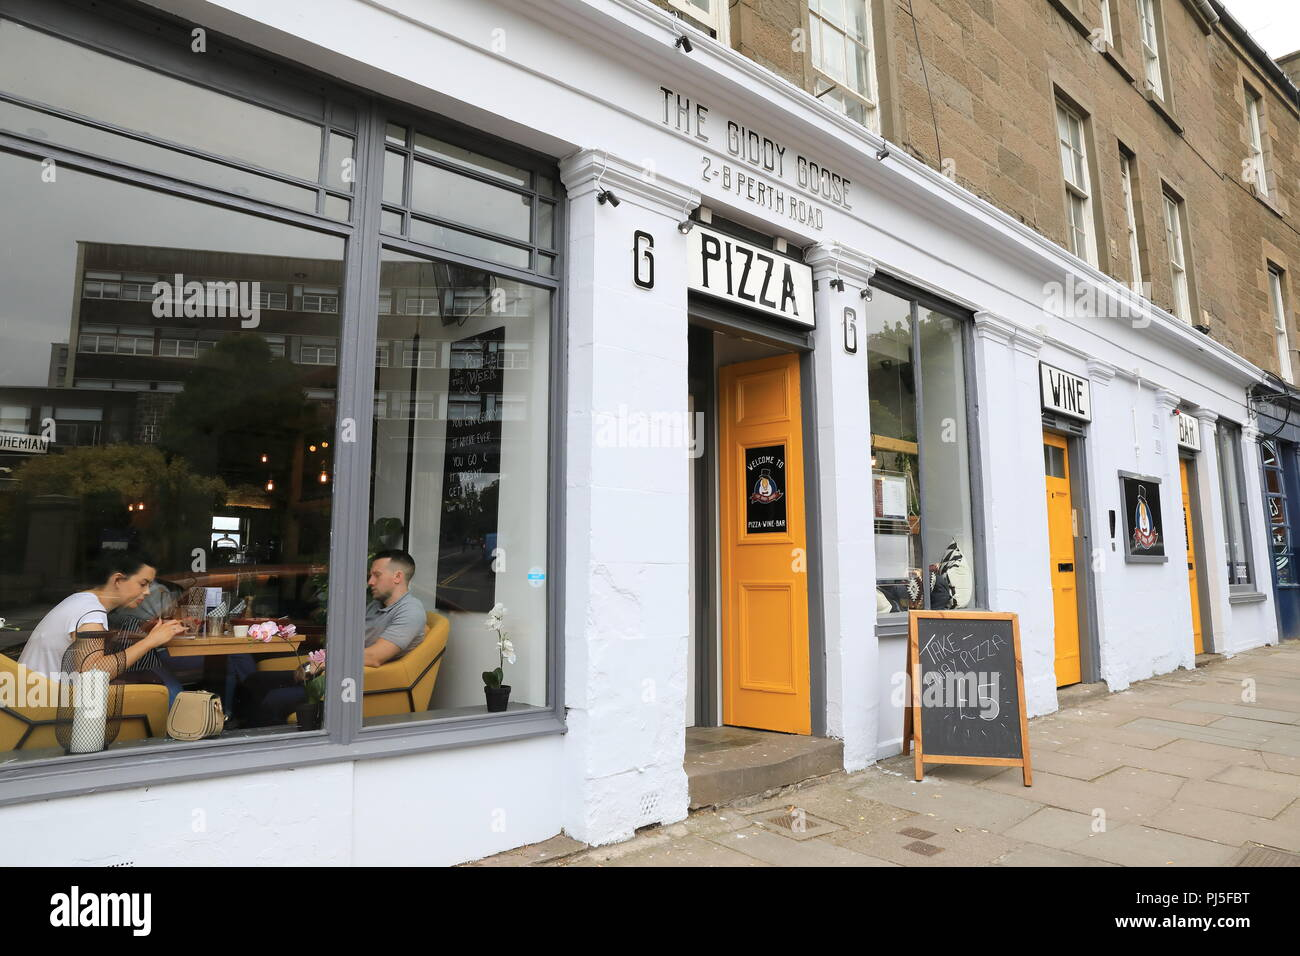 The Giddy Goose pizza wine bar on Perth Road, in Dundee, in Scotland, UK - Stock Image